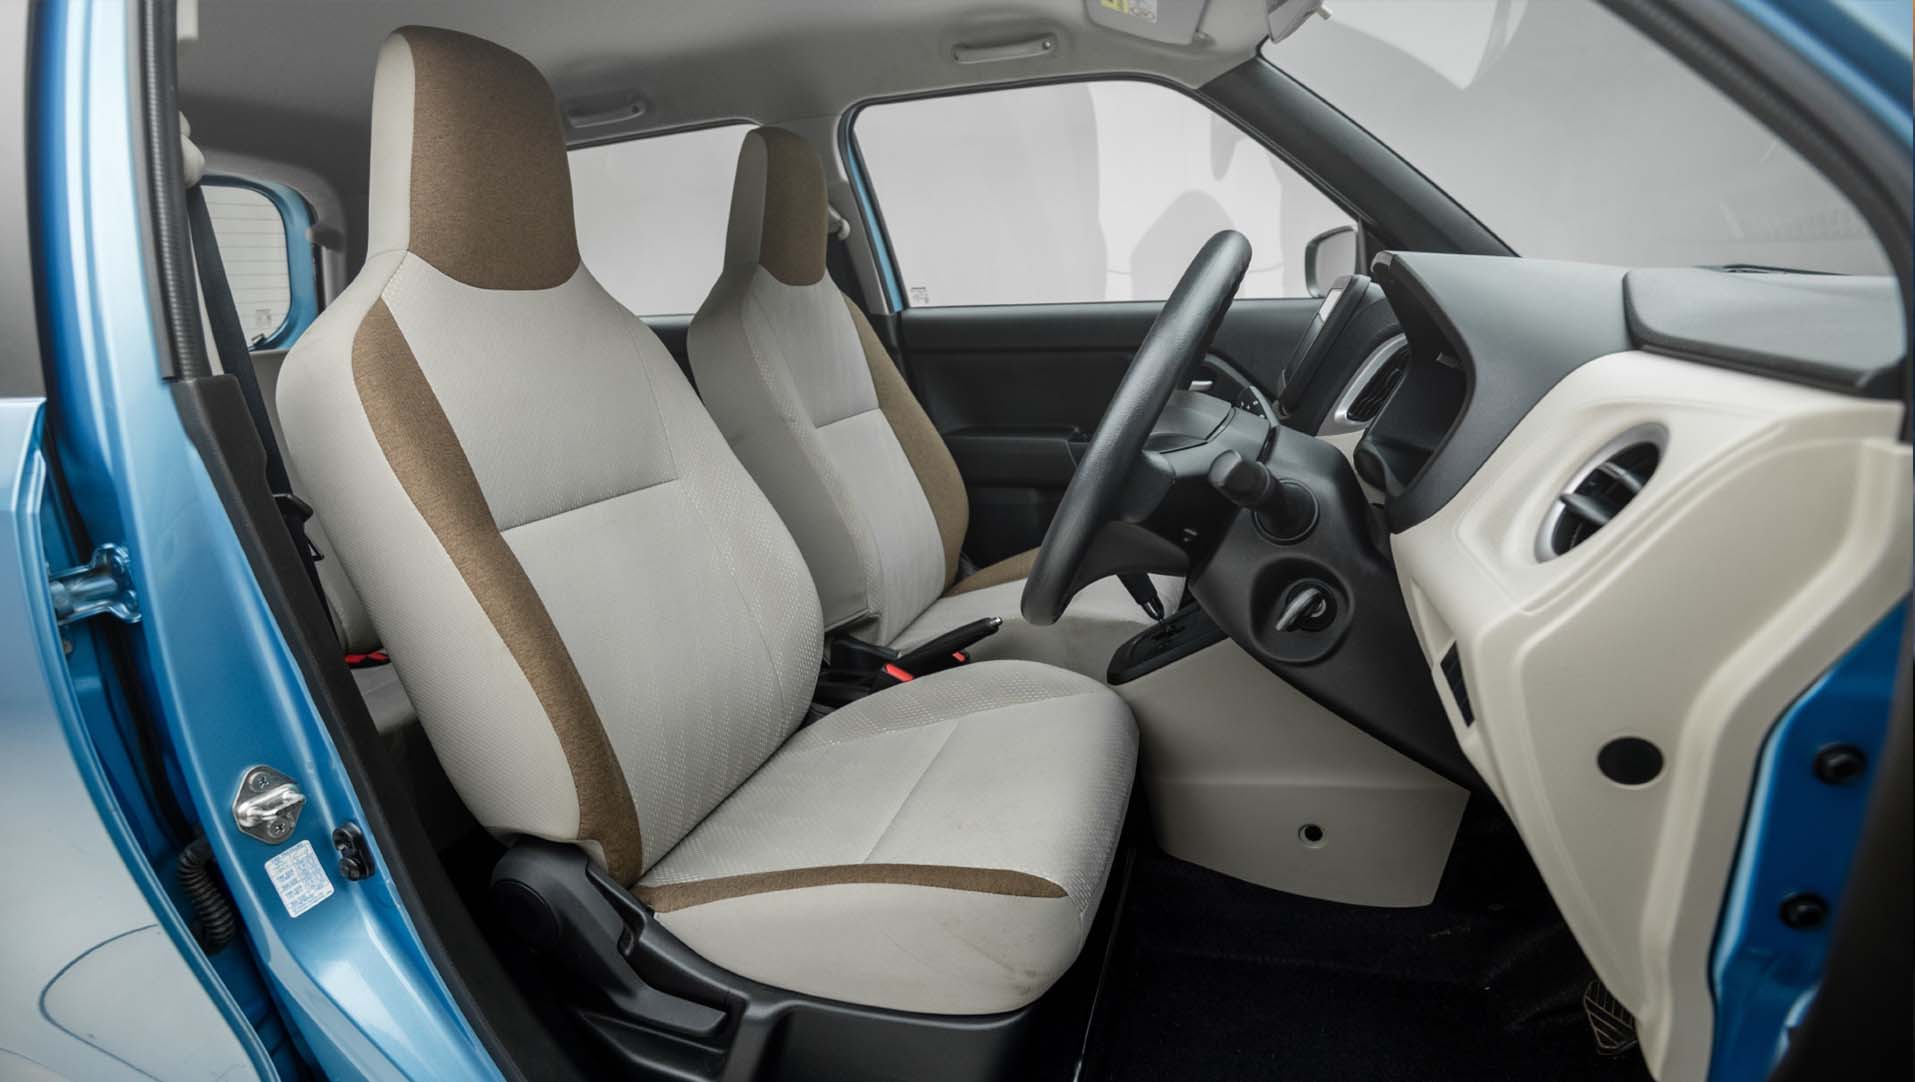 https://iciciauto.com/storage/upload/model_images/Maruti Wagon R - Seating.jpg